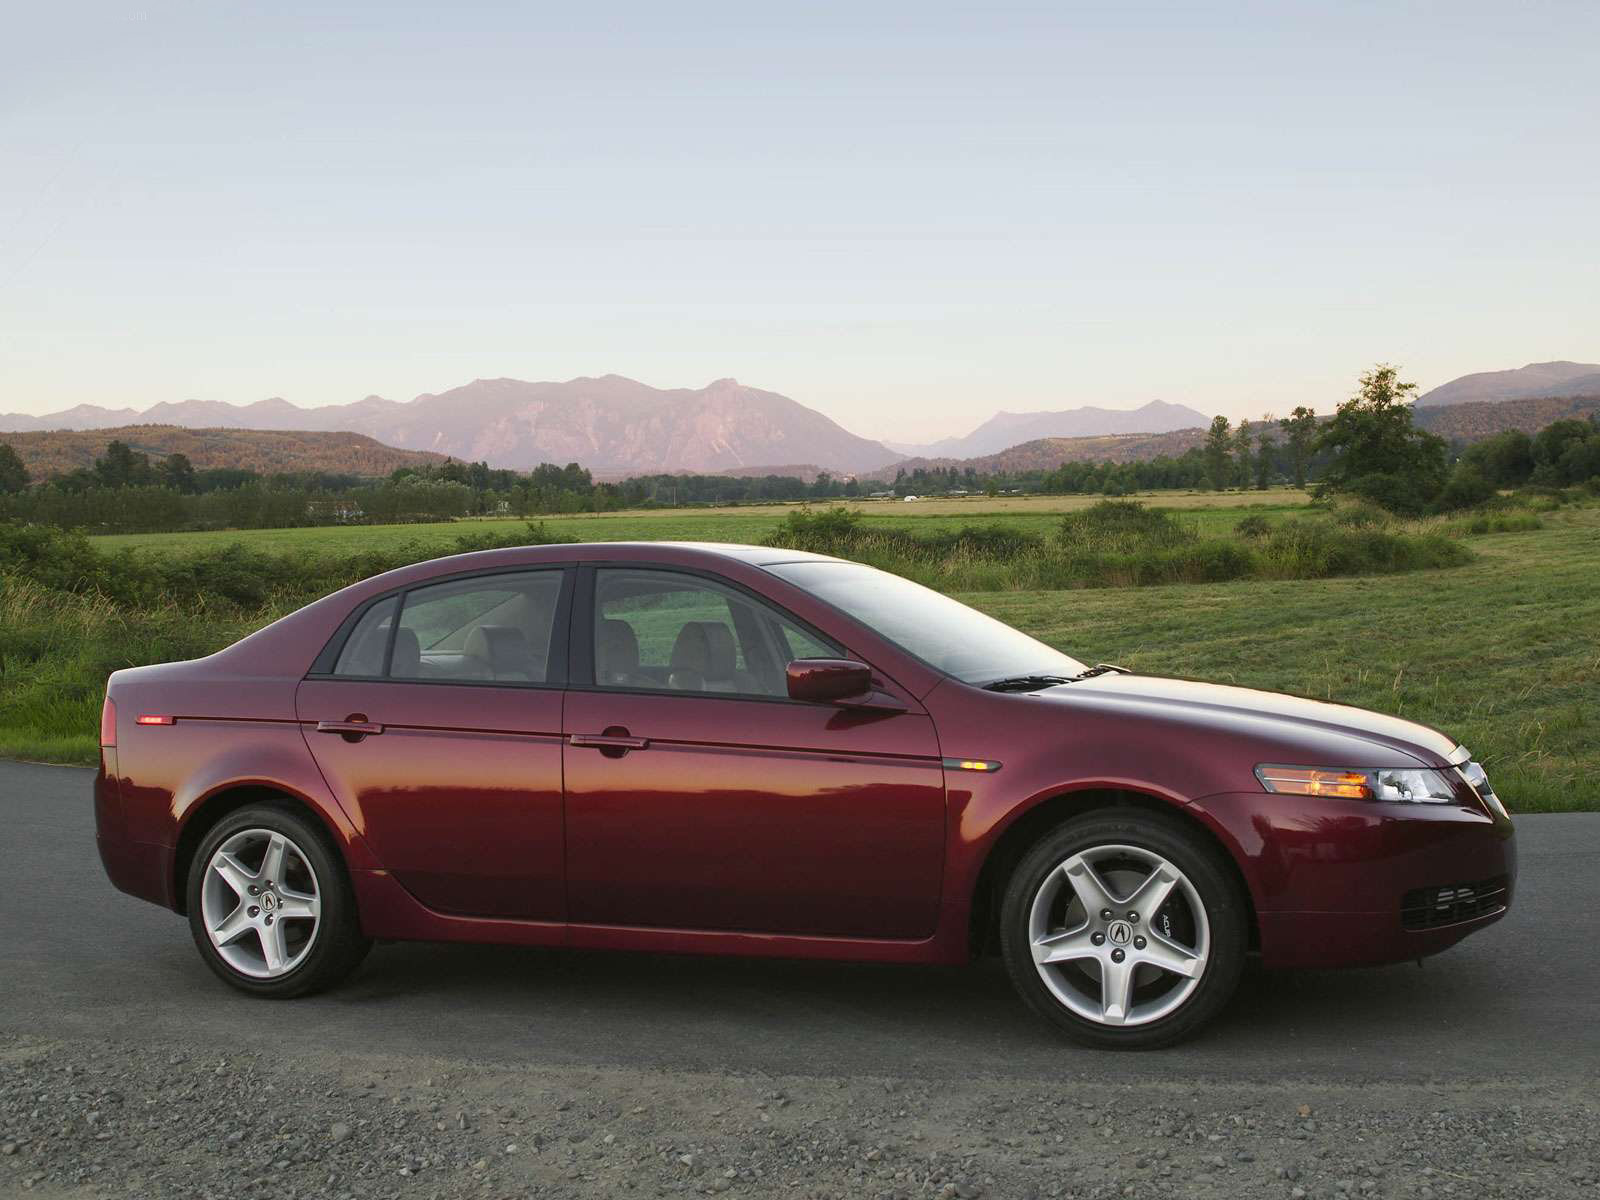 Maxresdefault further Acura Tl Japanese Car Wallpapers moreover Tl Acrsx as well Maxresdefault also Maxresdefault. on 1999 acura tl